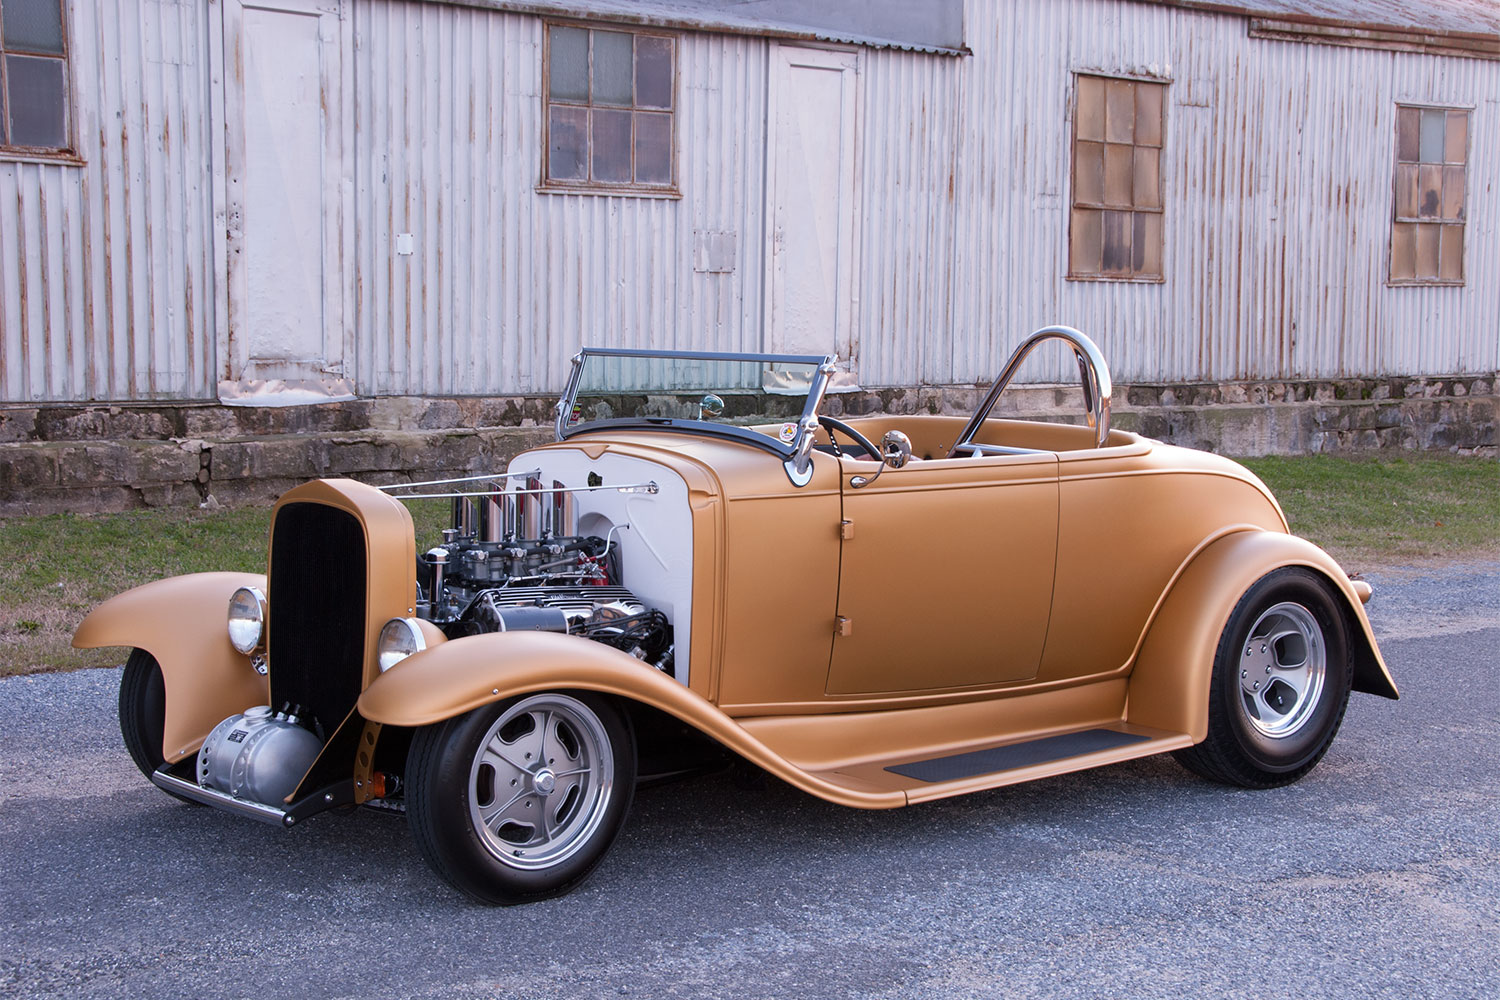 hight resolution of with flowing fenders and a pavement hugging stance neal s roadster has plenty of attitude